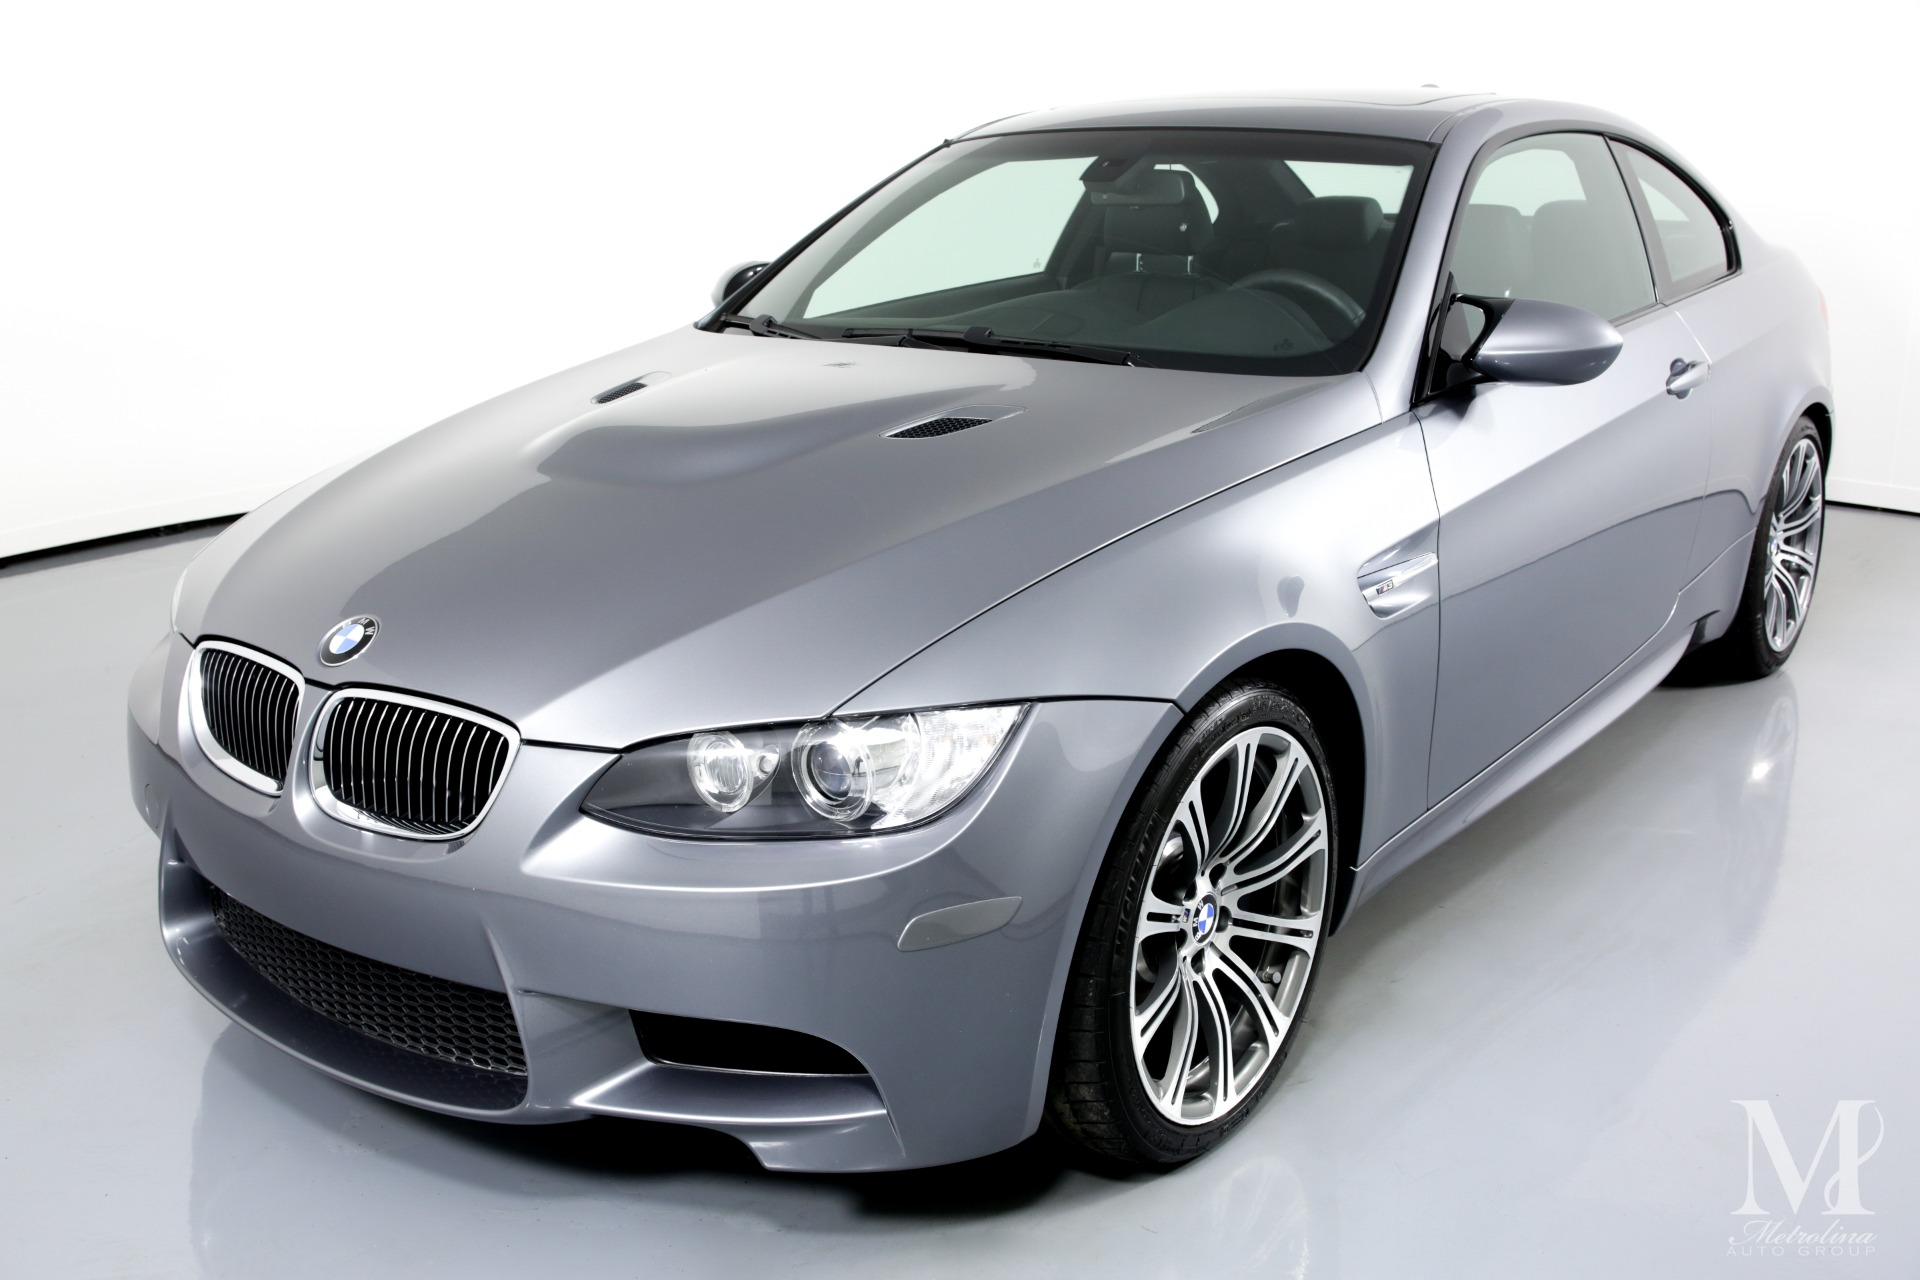 Used 2009 BMW M3 Base 2dr Coupe for sale $29,996 at Metrolina Auto Group in Charlotte NC 28217 - 4